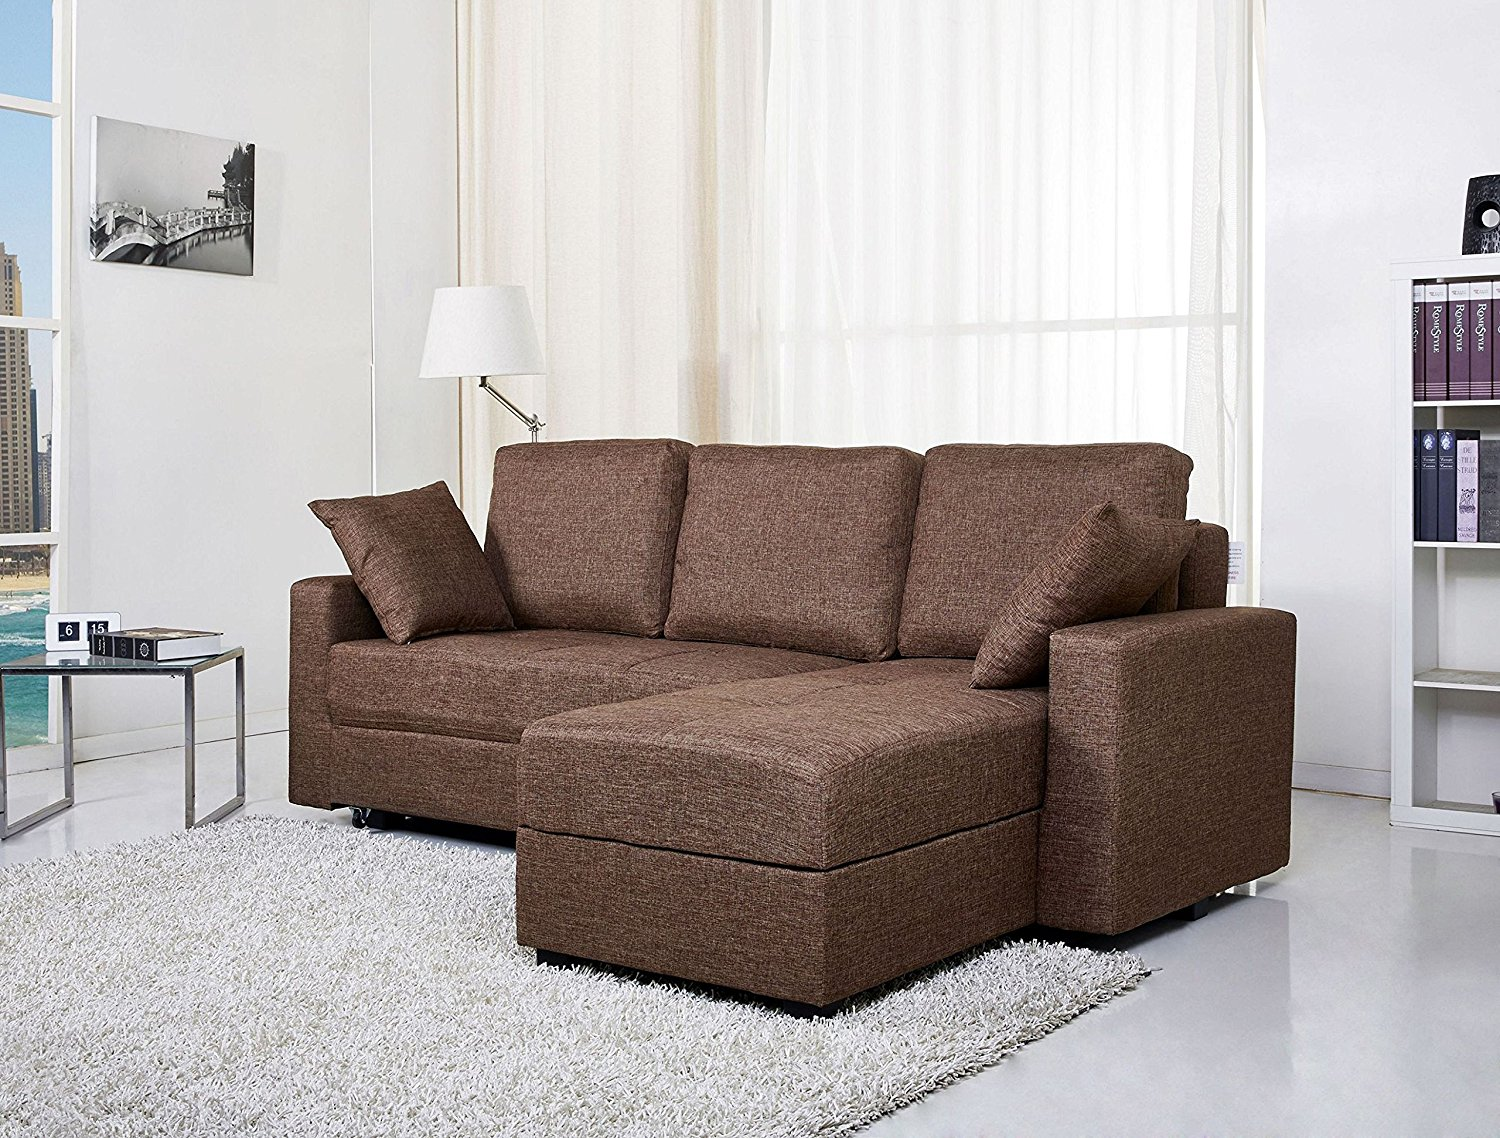 Convertible Sectional Sofa Bed Storage Royals Courage